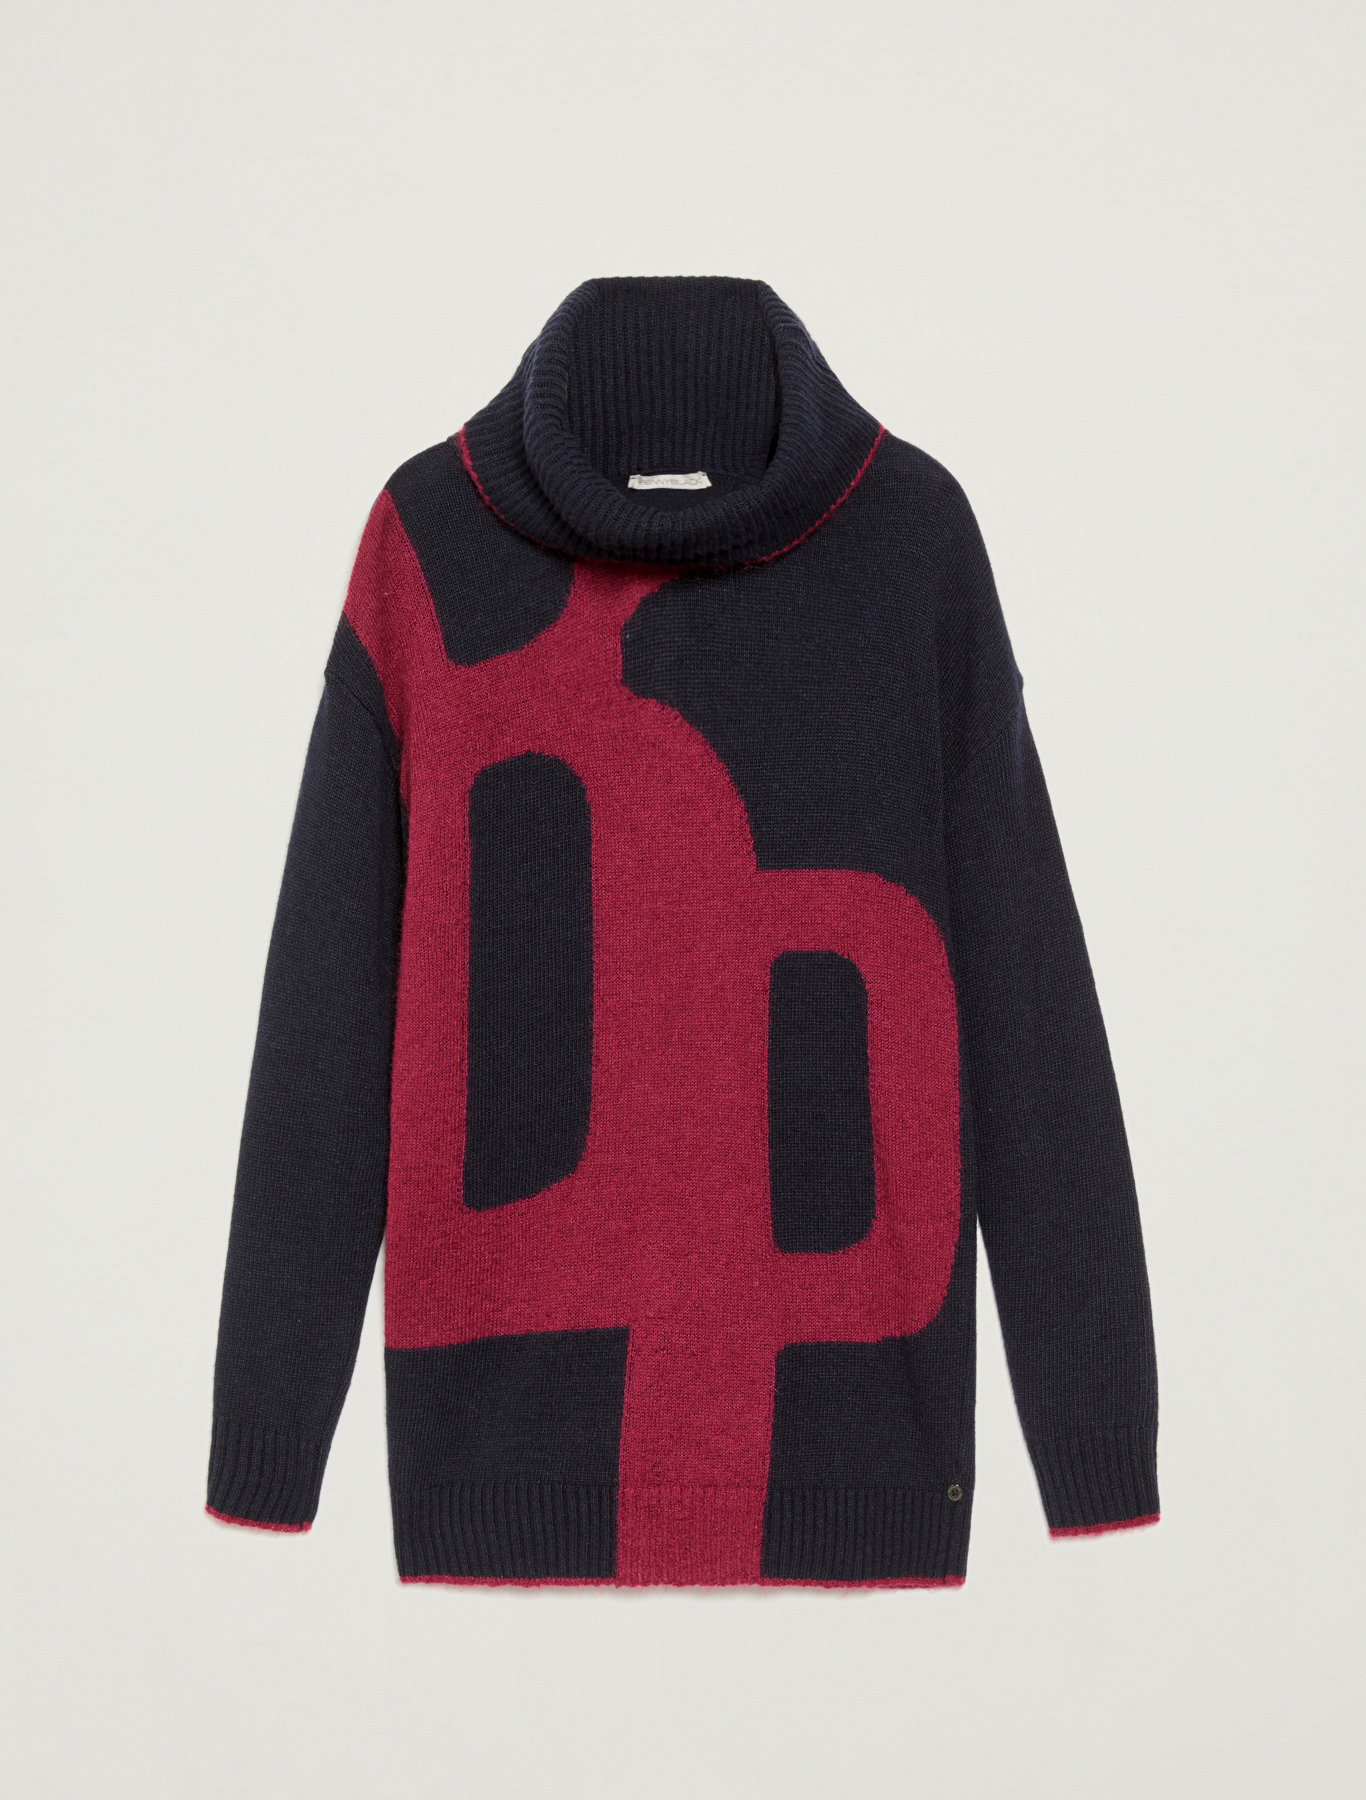 Jumper with lettering inlay - plum - pennyblack